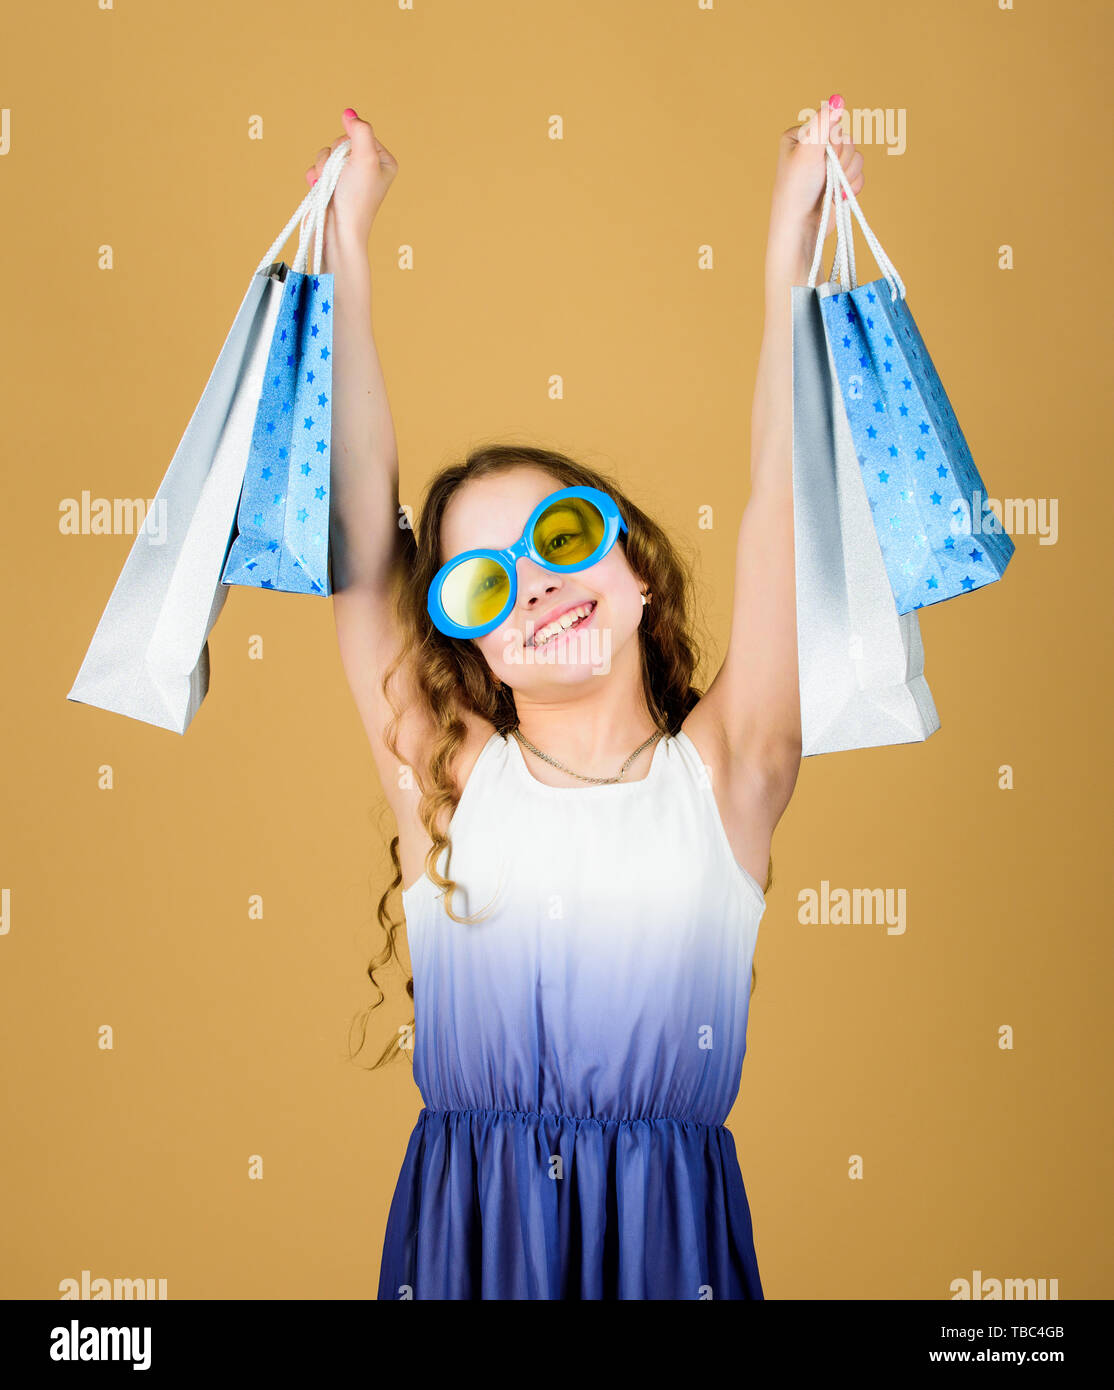 summer sales. Small girl fashion. black Friday discount. cyber Monday. Present and gifts buy. happy shopping girl with bags. happy birthday holiday. Beauty. Quality service. Home shopping. - Stock Image